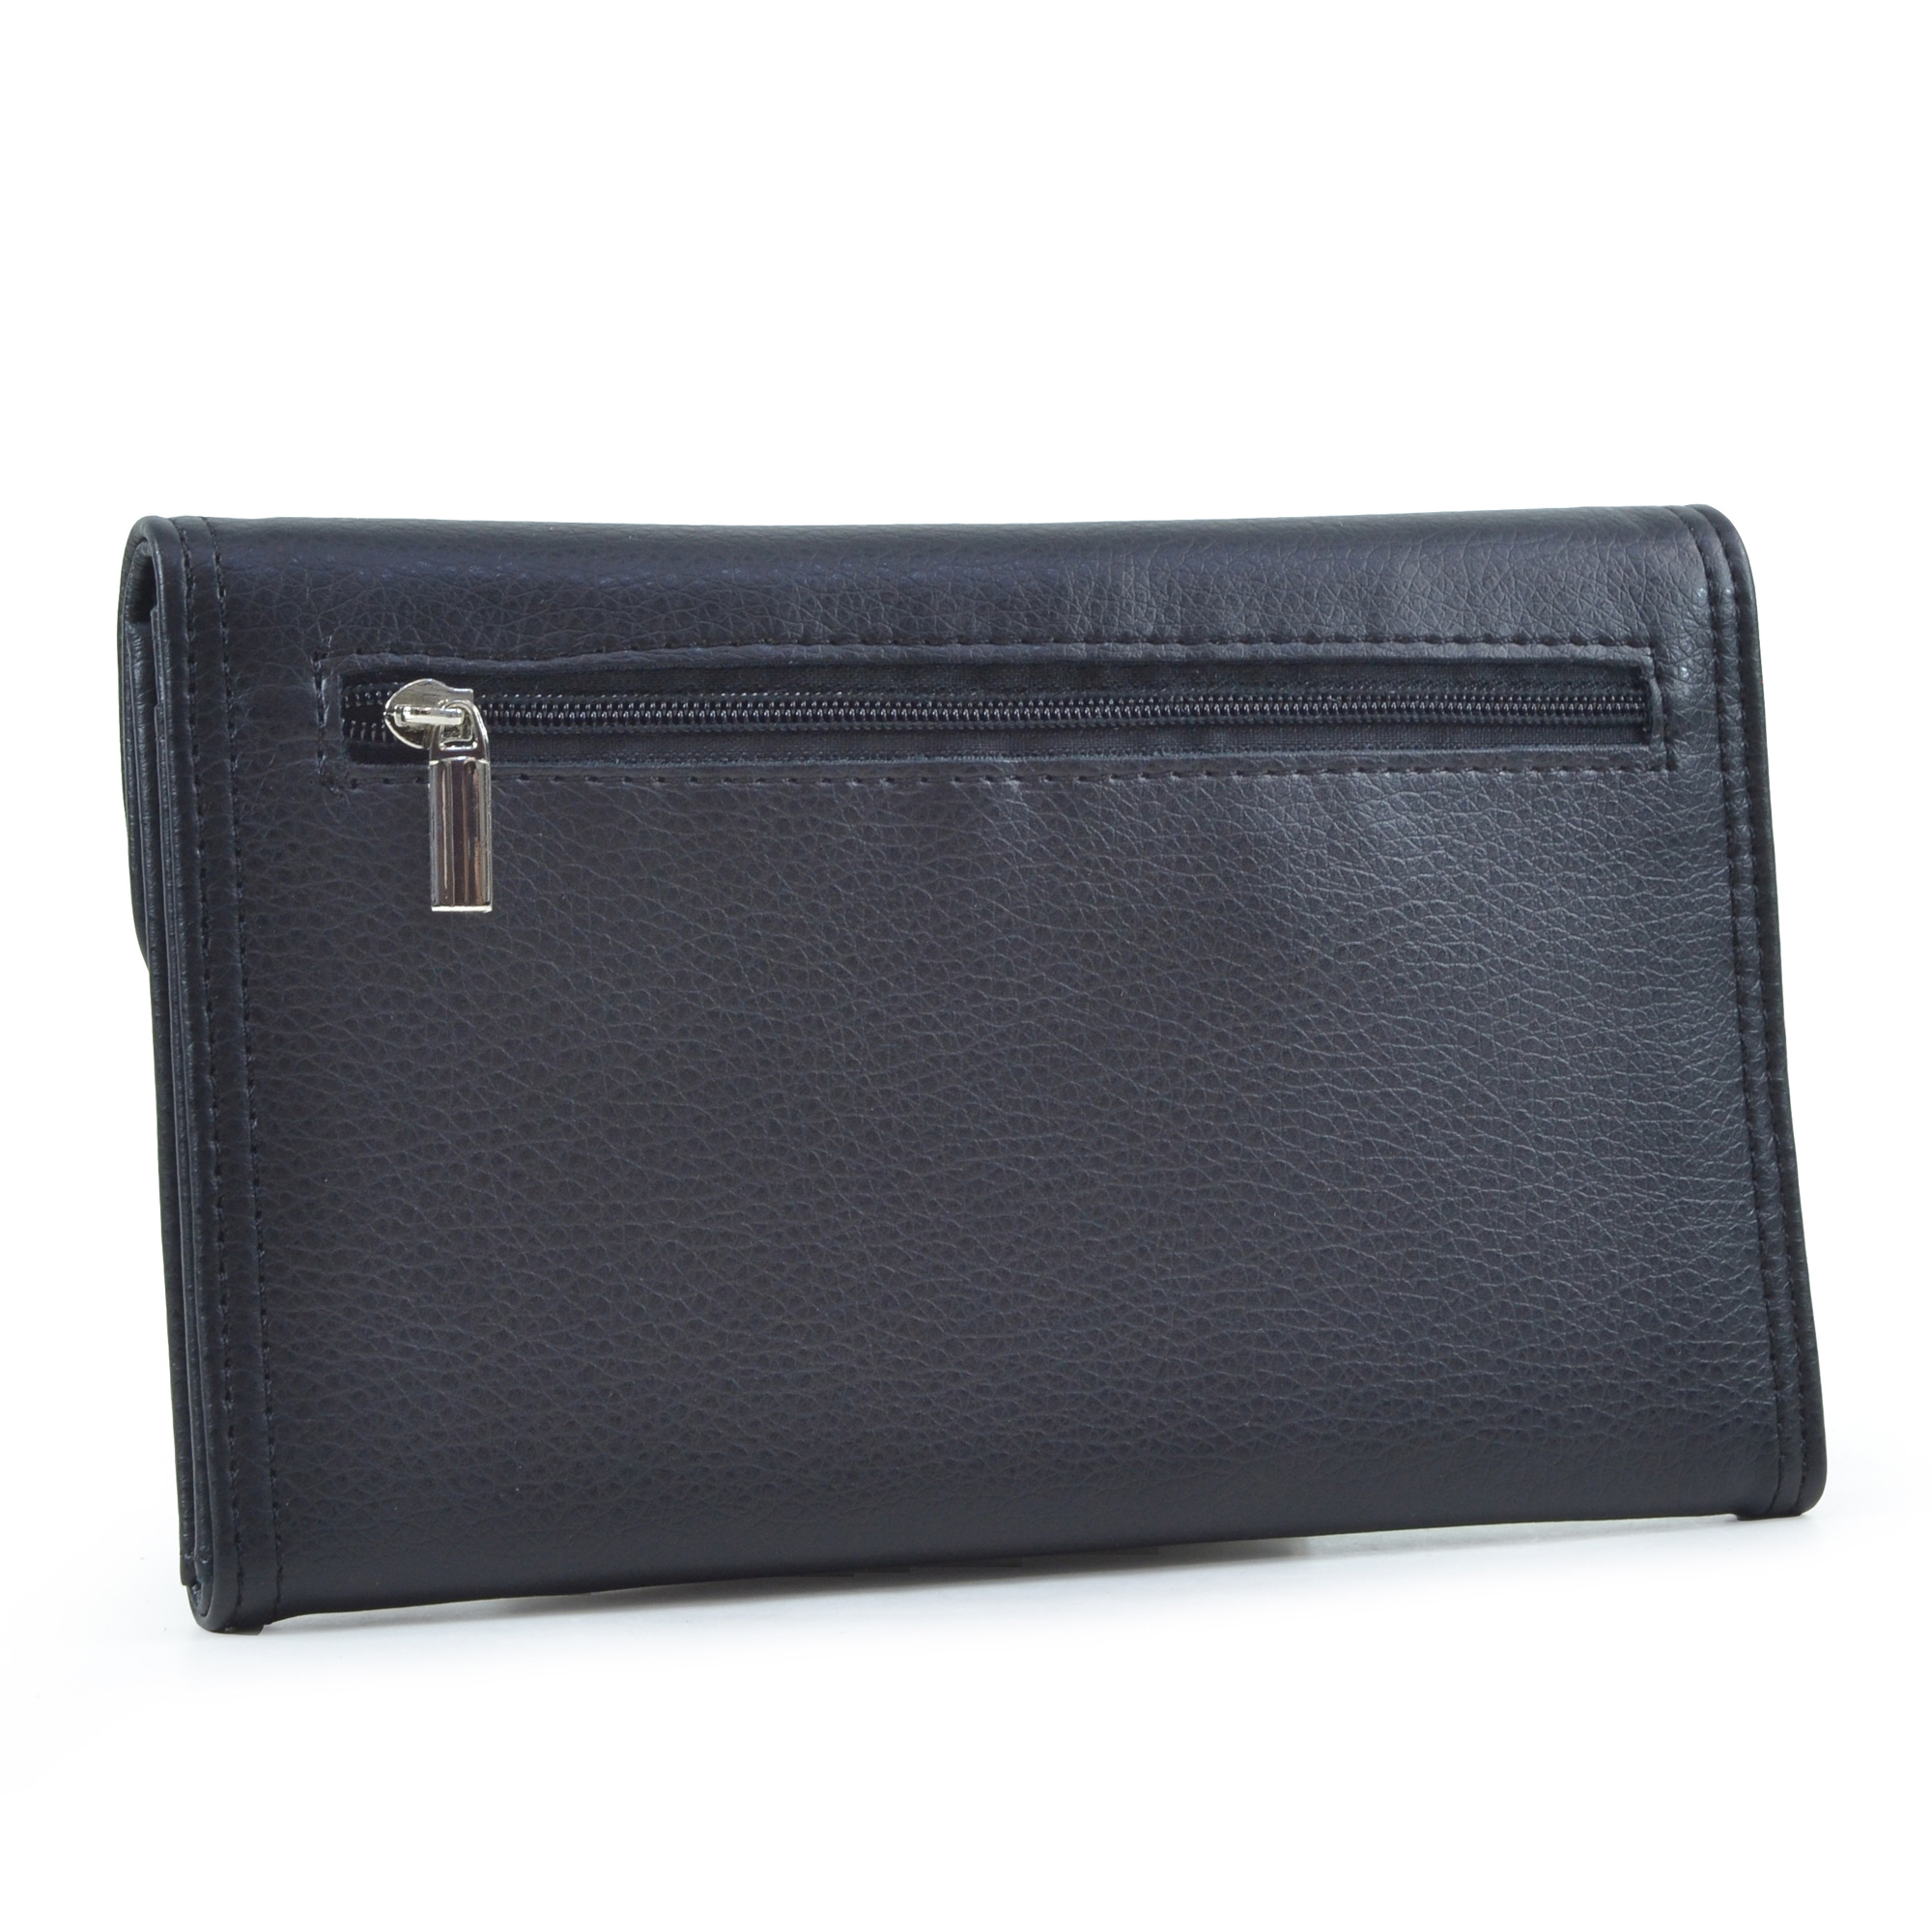 Dasein® Faux Leather Wallet with Buckle Snap Closure